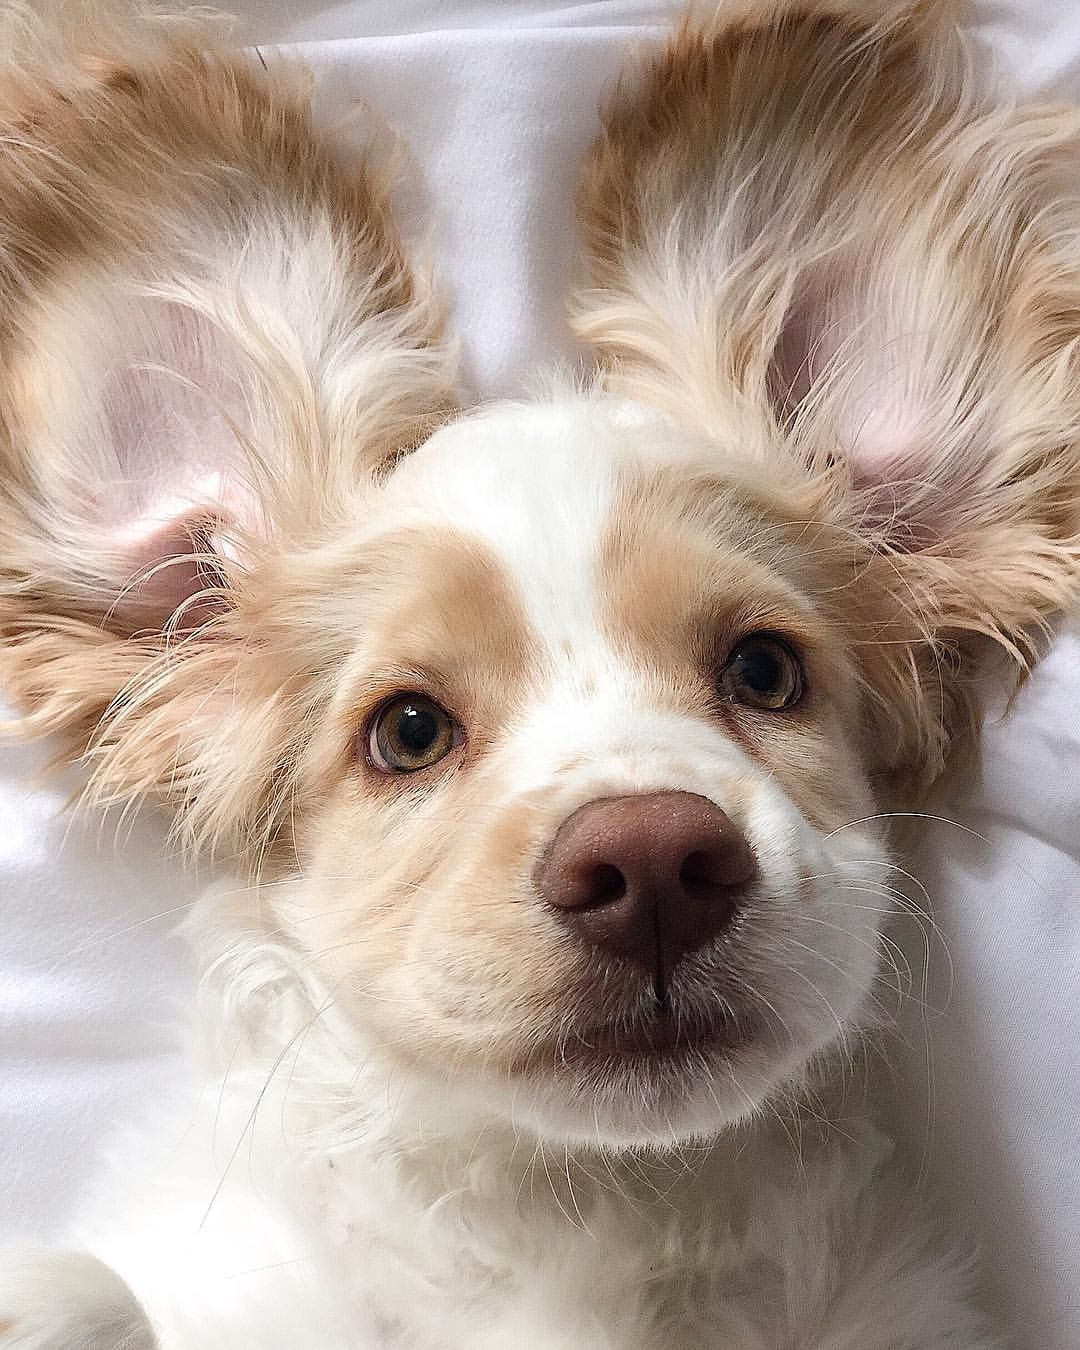 Dog Or Human We Re Having A Hard Time Deciding Cute Adorable